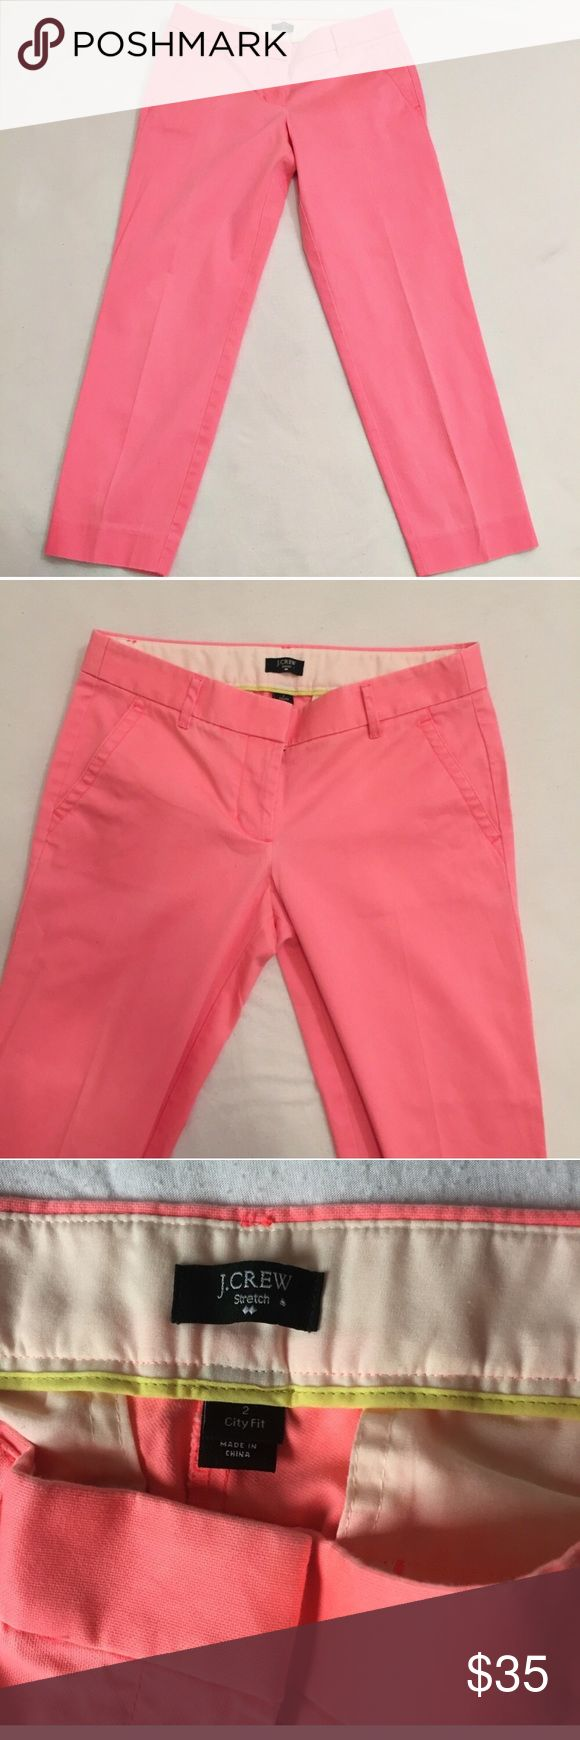 J. Crew City Fit Neon Pink Pant J.Crew neon watermelon pink pants. These are the city fit stretch pants. Gently used condition. Selling for my roommate ~ J. Crew Pants Trousers